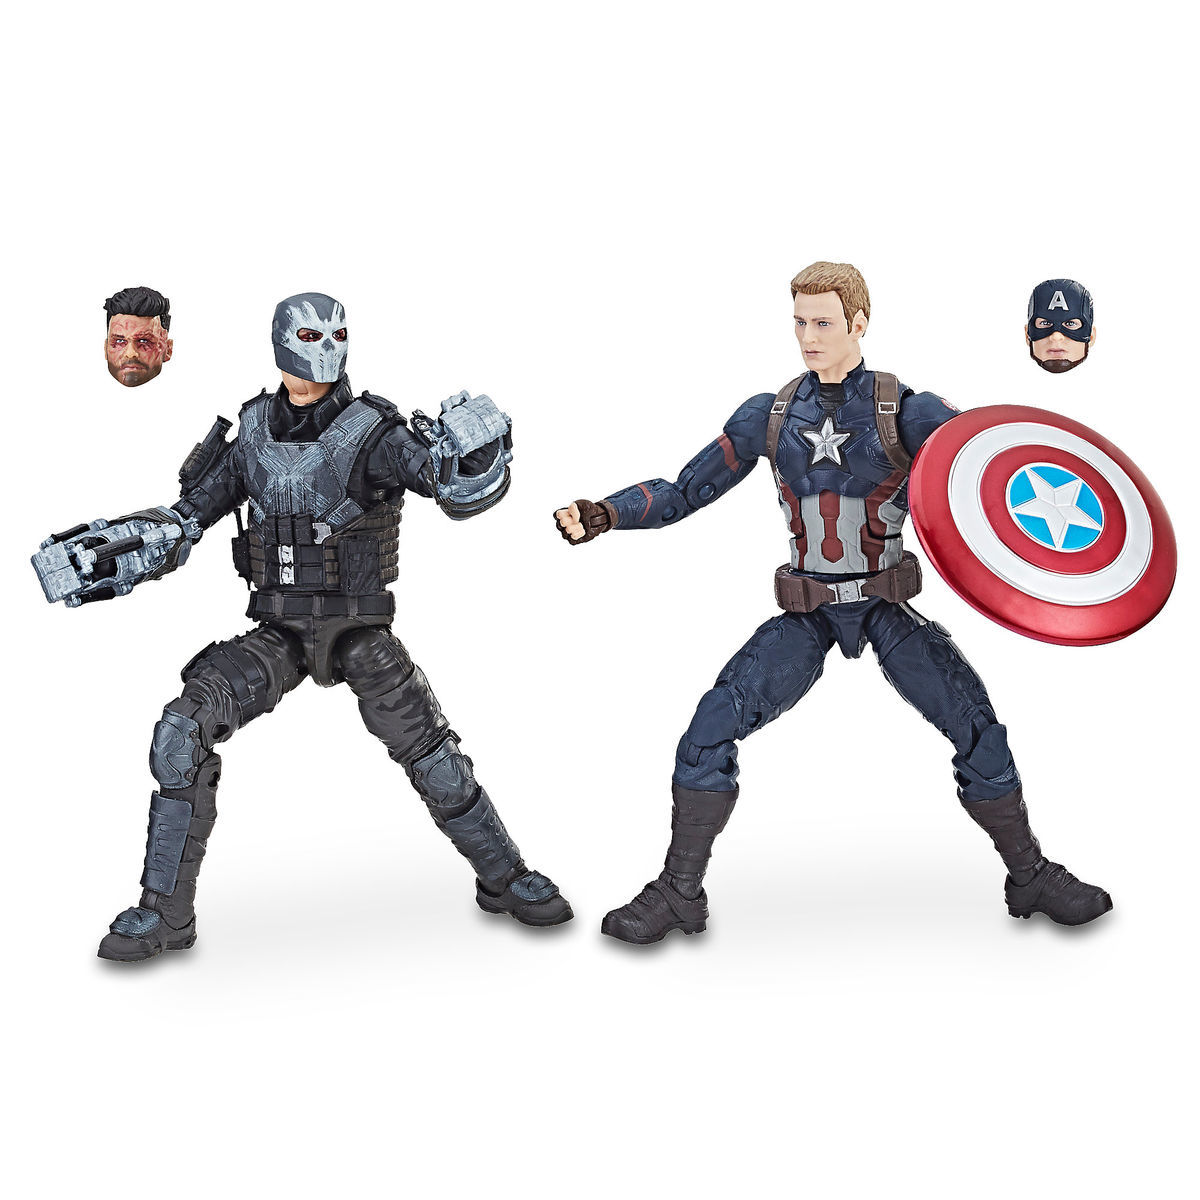 Product Image of Captain America and Crossbones Action Figures - Legends  Series - Marvel Studios 10th